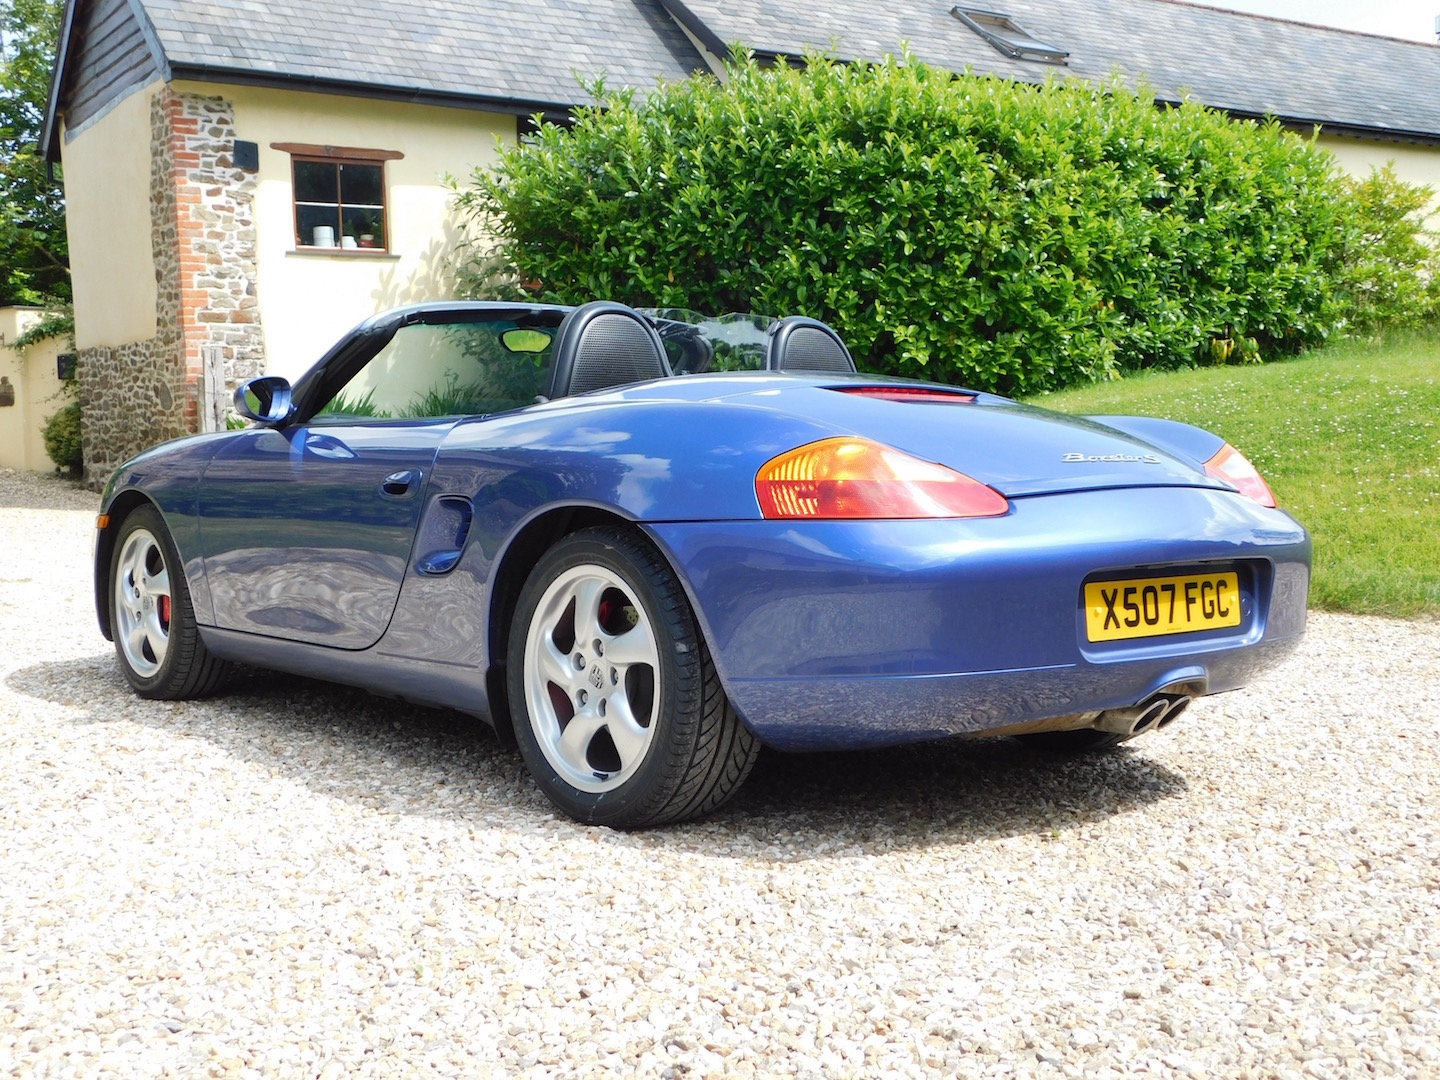 2000 Porsche 986 Boxster 3.2 S - 1 owner, 19k miles, concours For Sale (picture 3 of 6)